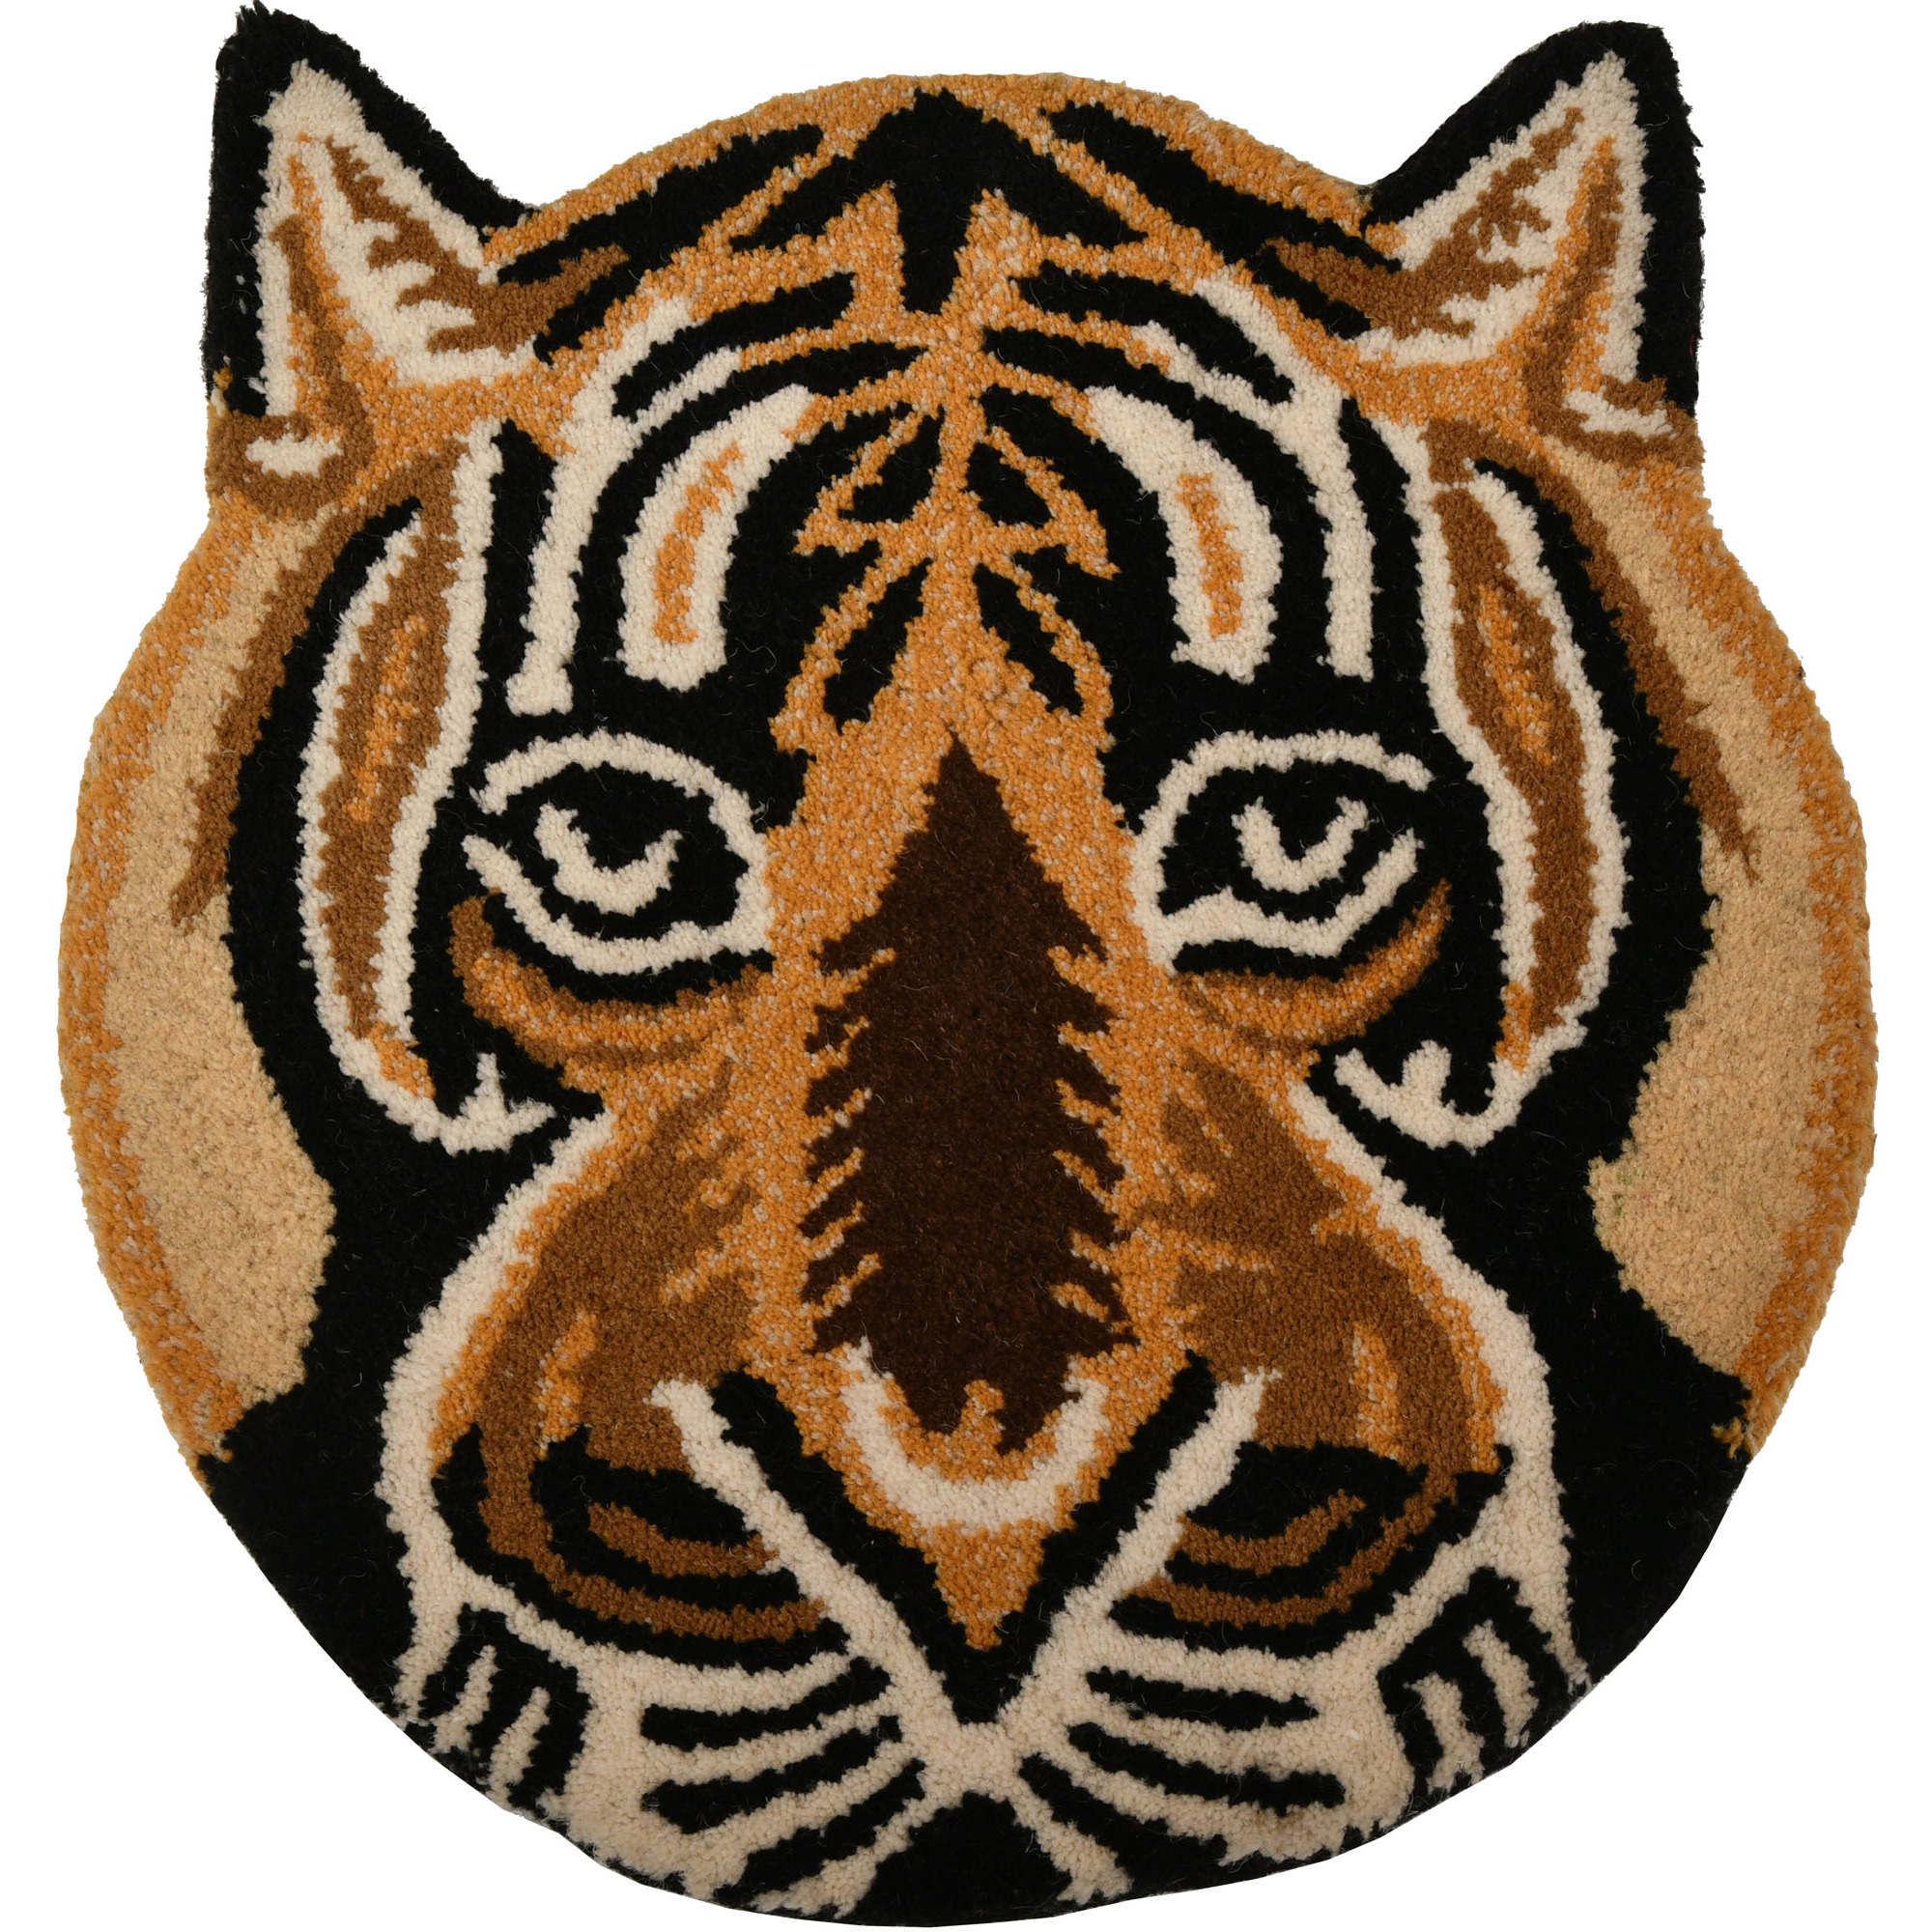 Tiger Mat from Mirzapur